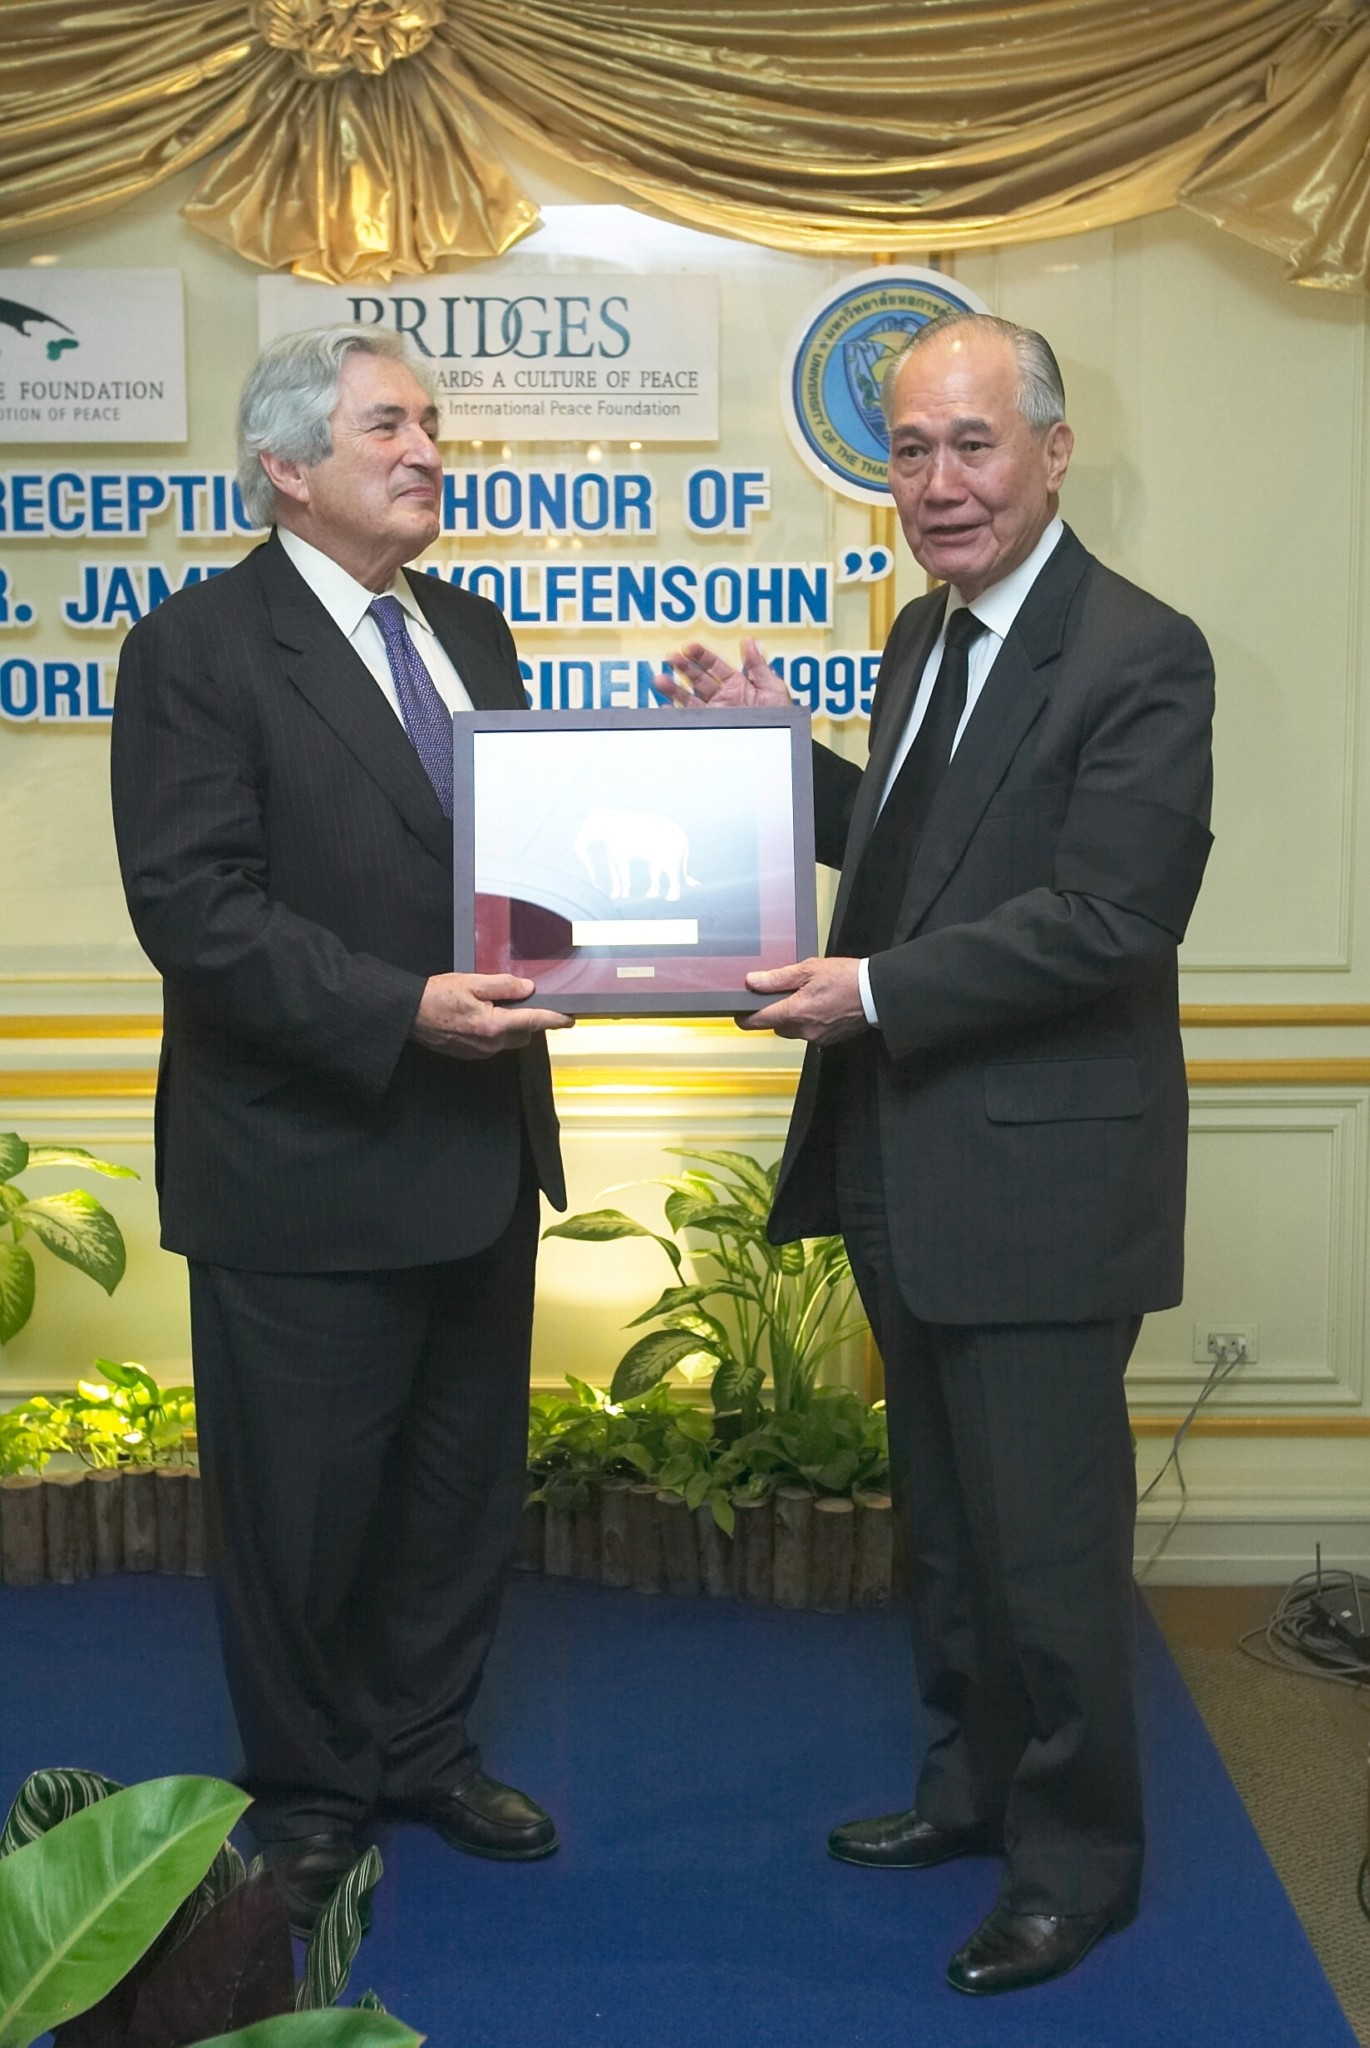 Former World Bank President Dr. James D. Wolfensohn with the Thai Honorary Chairman of Bridges Anand Panyarachun